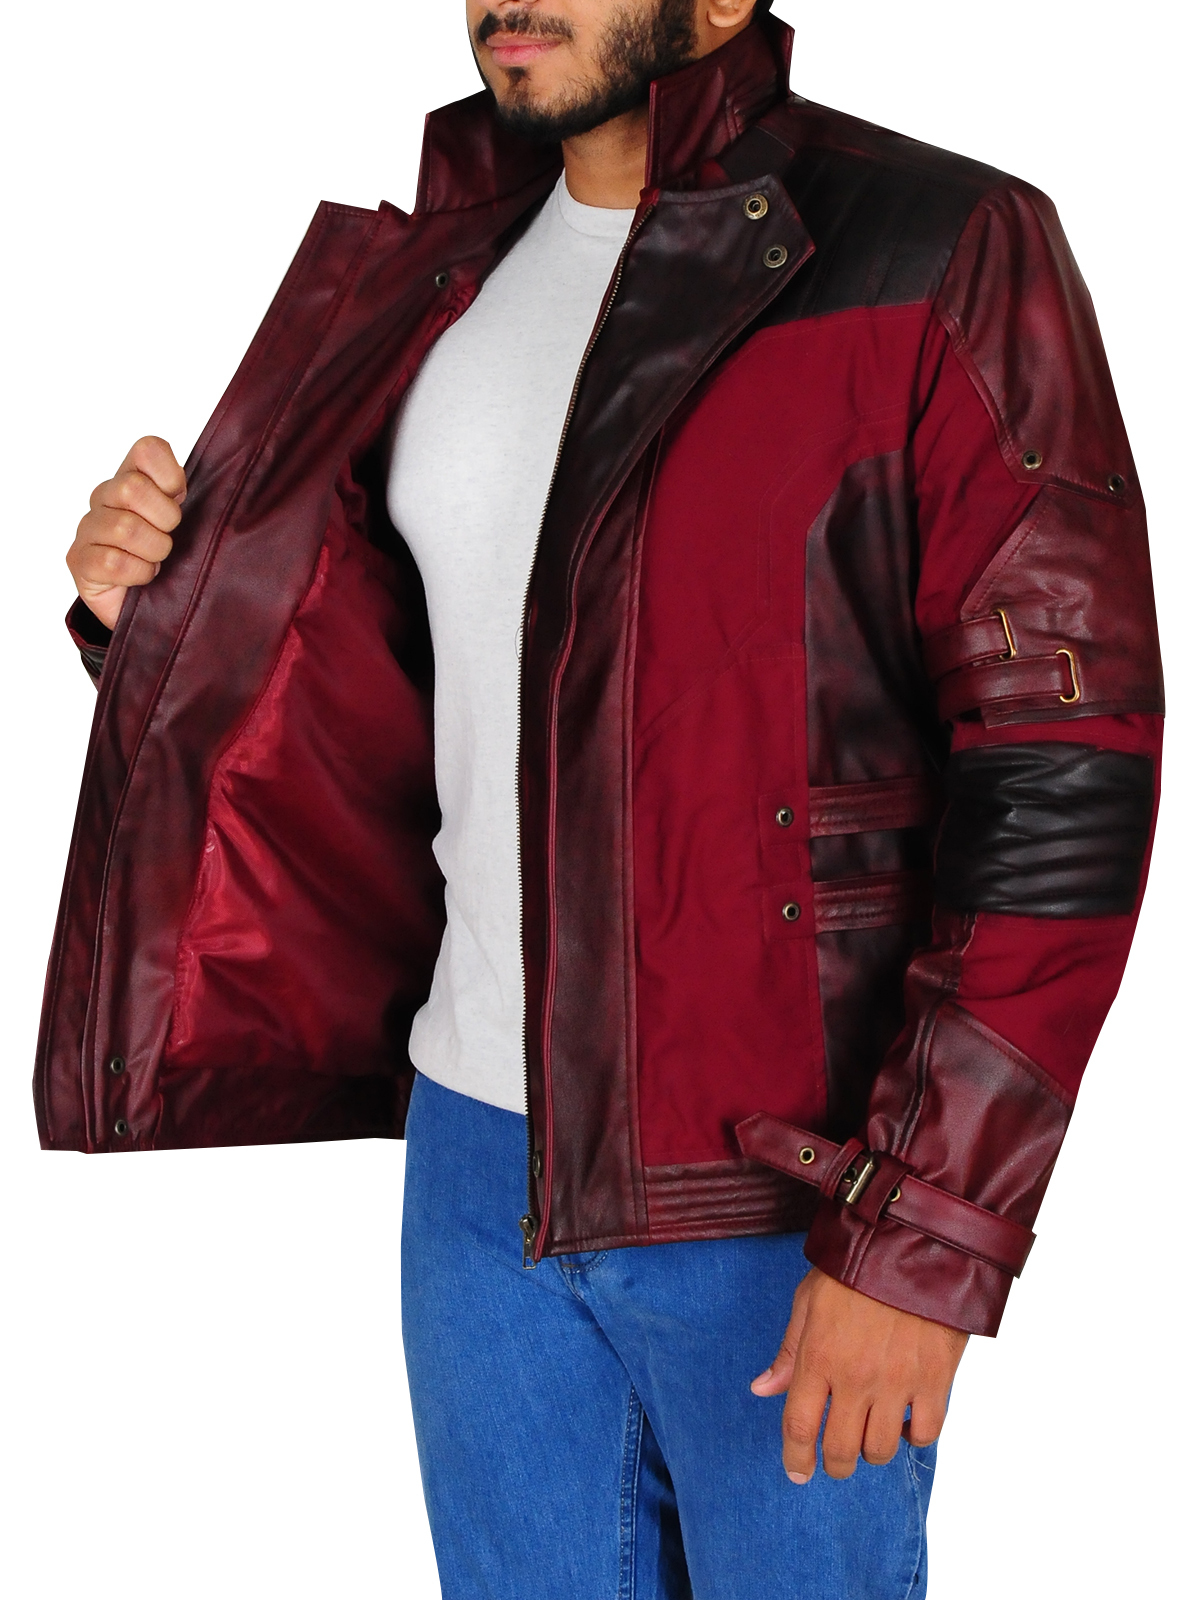 Motorsports Star Lord Cosplay Leather Jacket